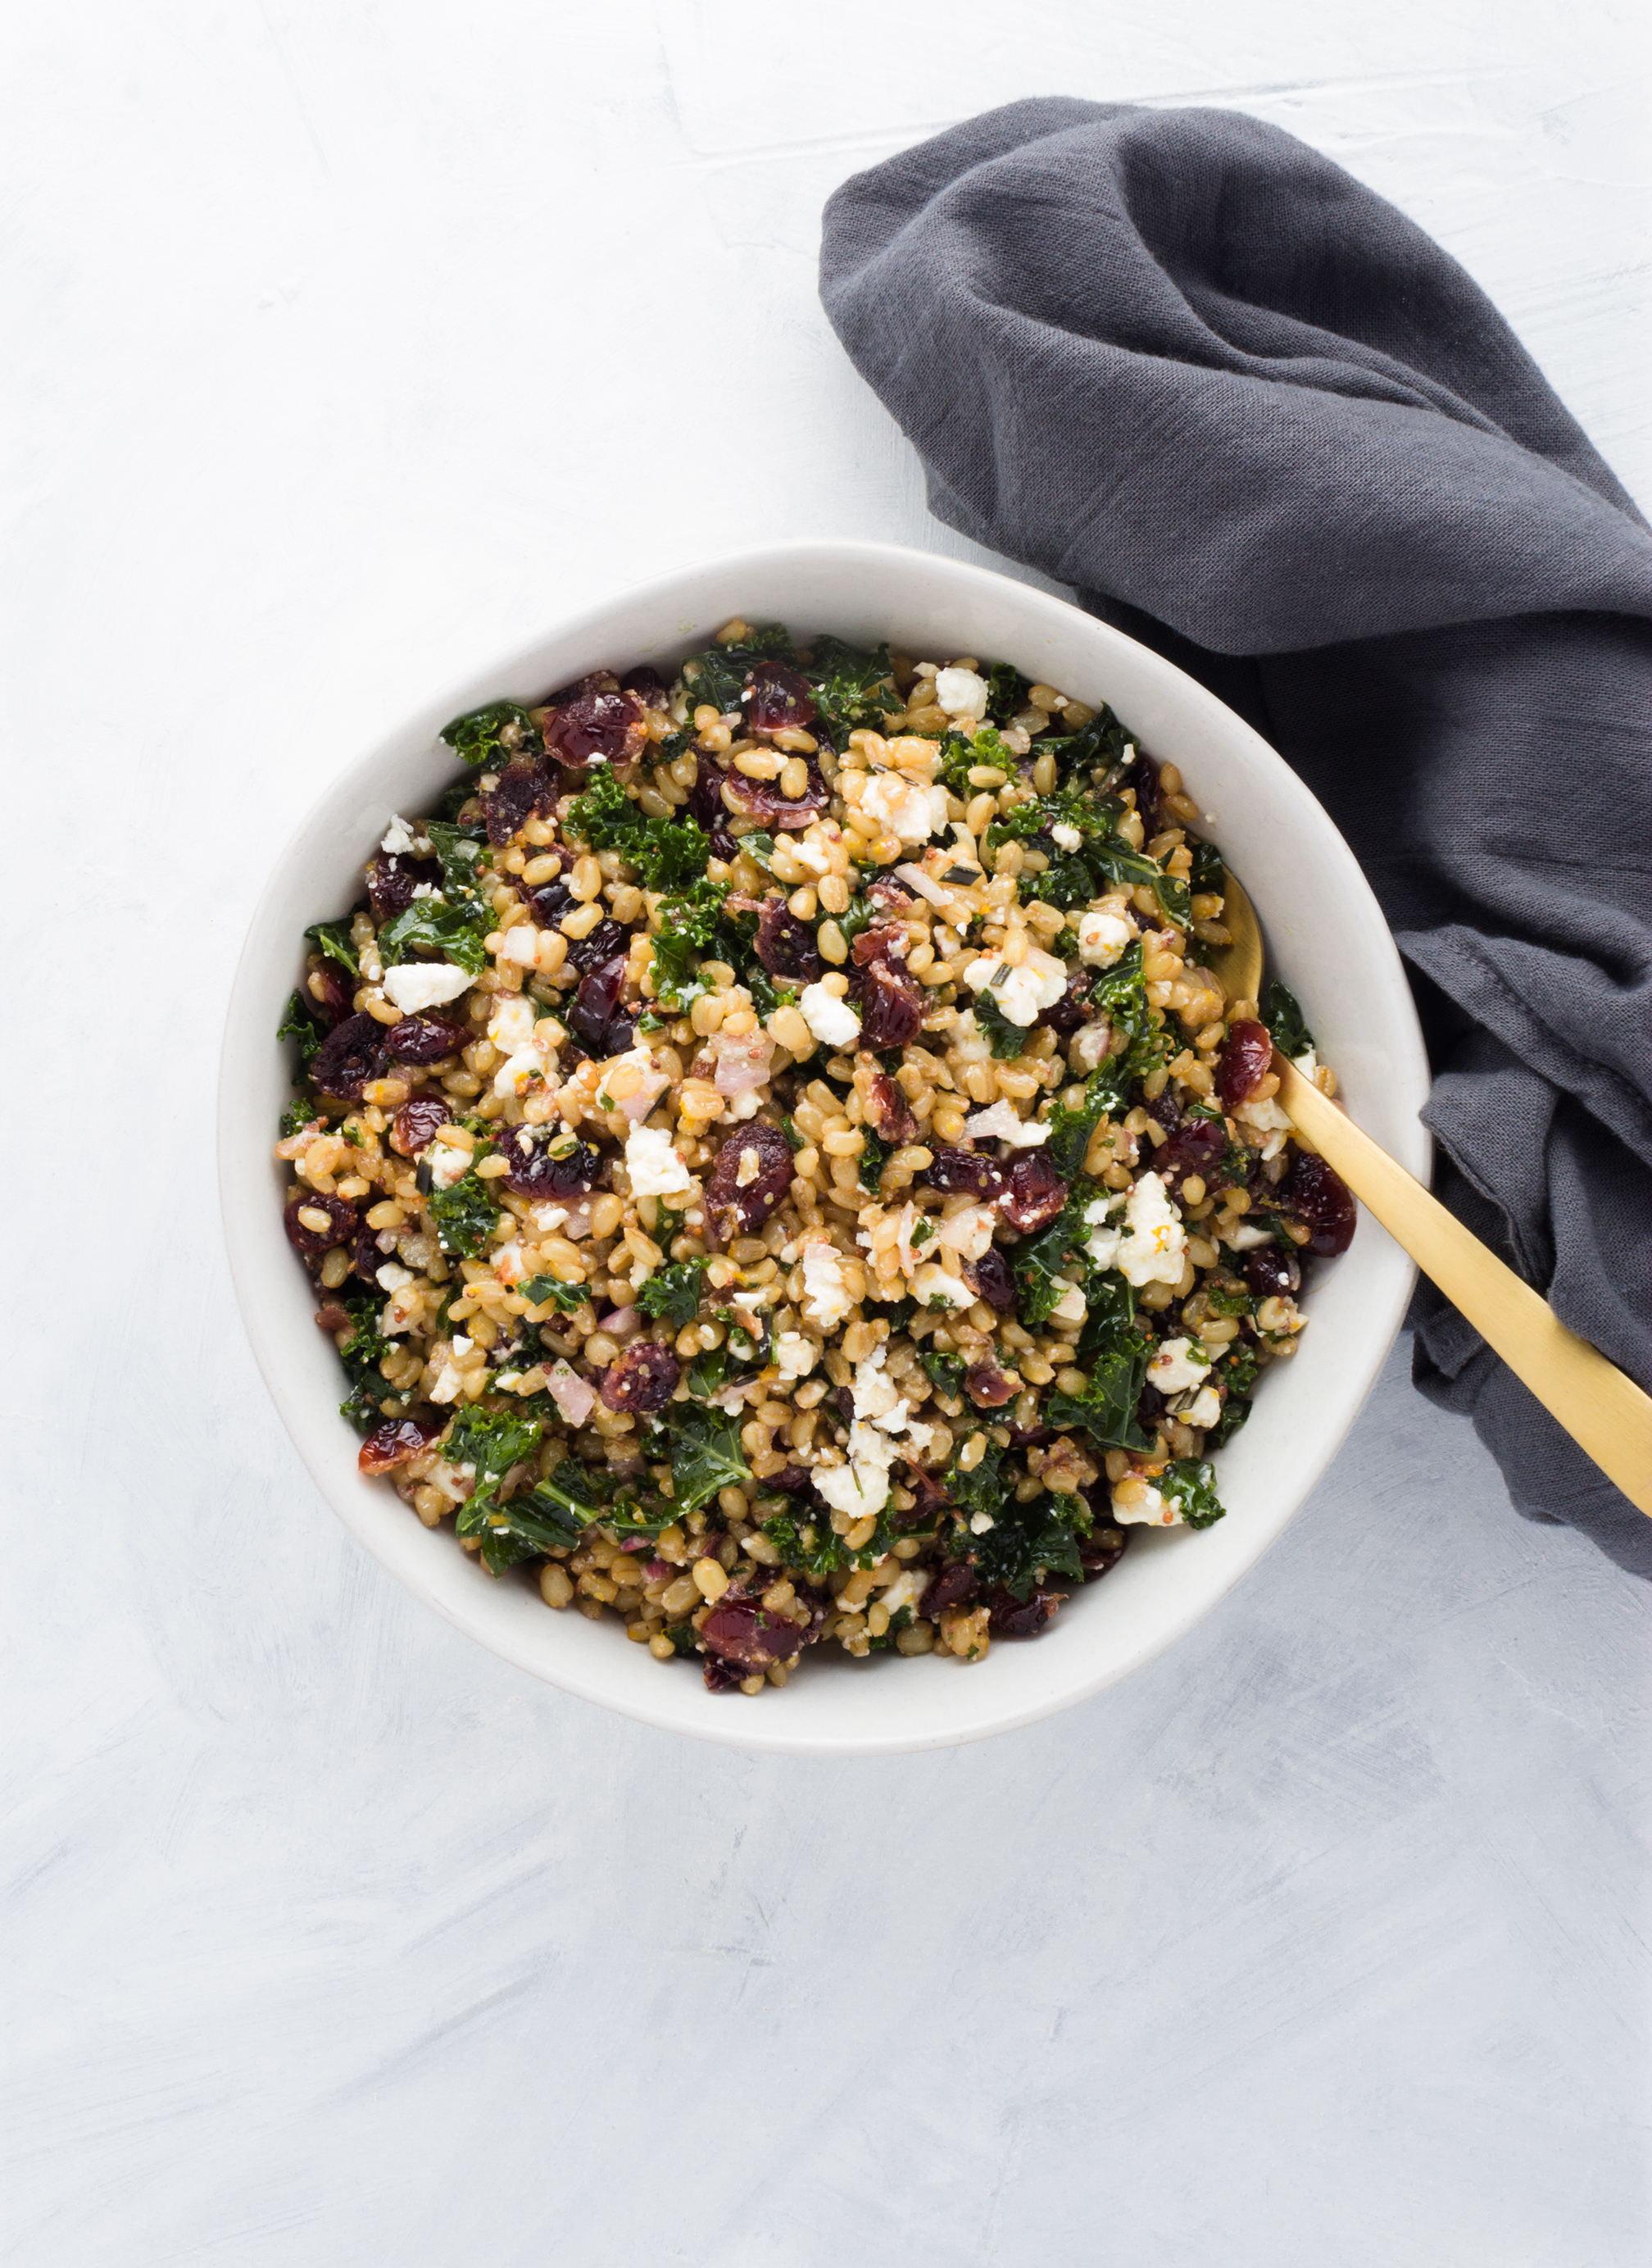 This Autumn Wheat Berry Salad features hearty wheat berries which provide a chewy and nutty texture.